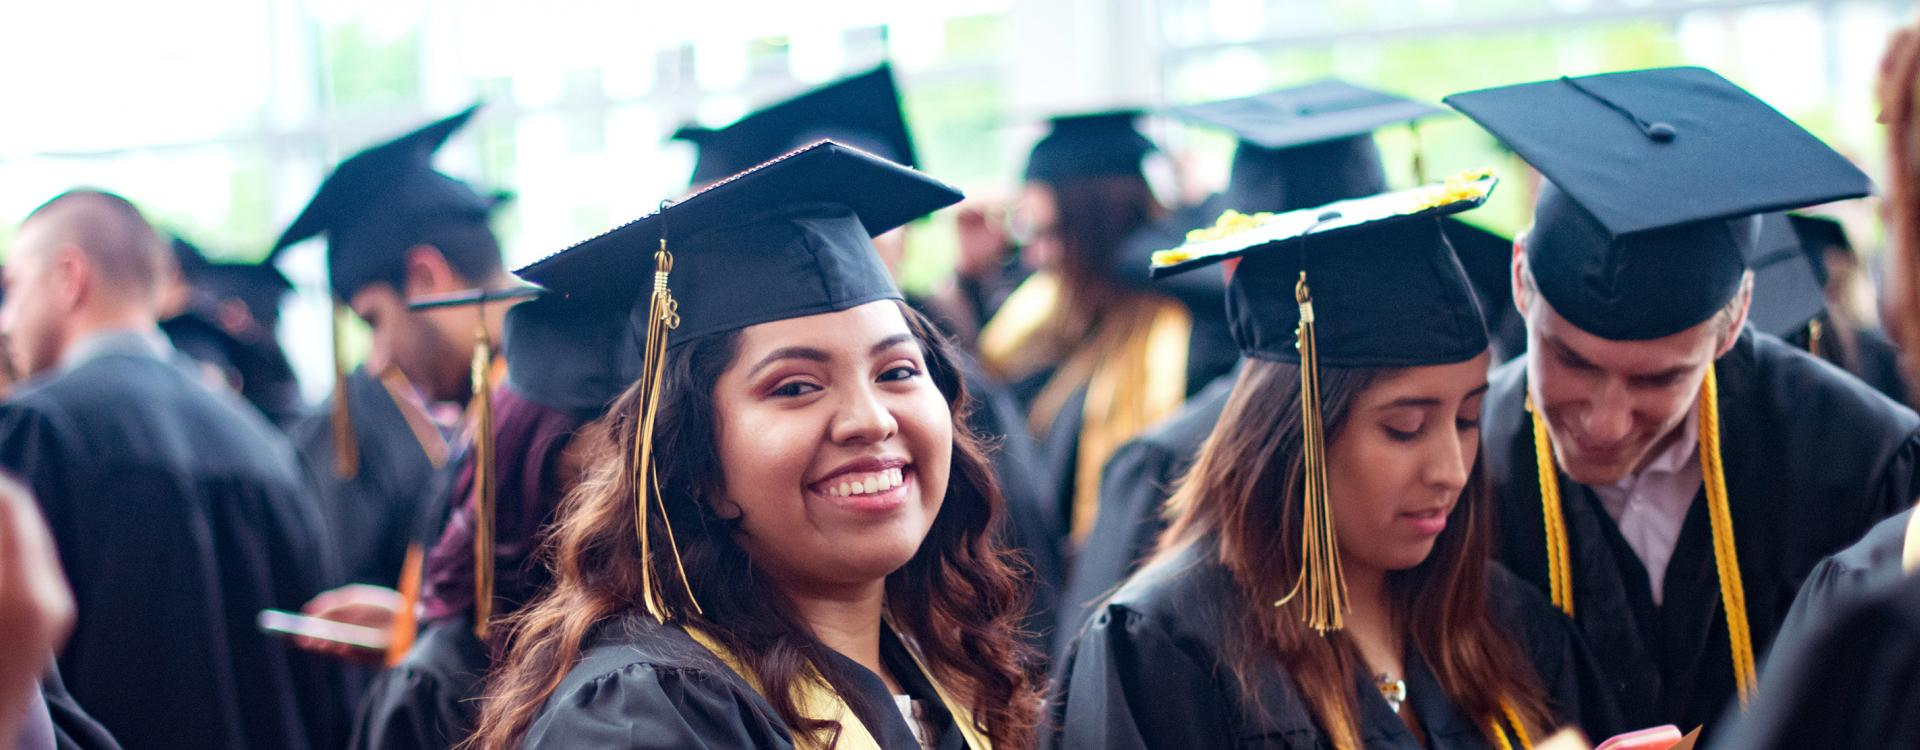 A Durham Tech student wearing a cap and gown smiles during commencement.